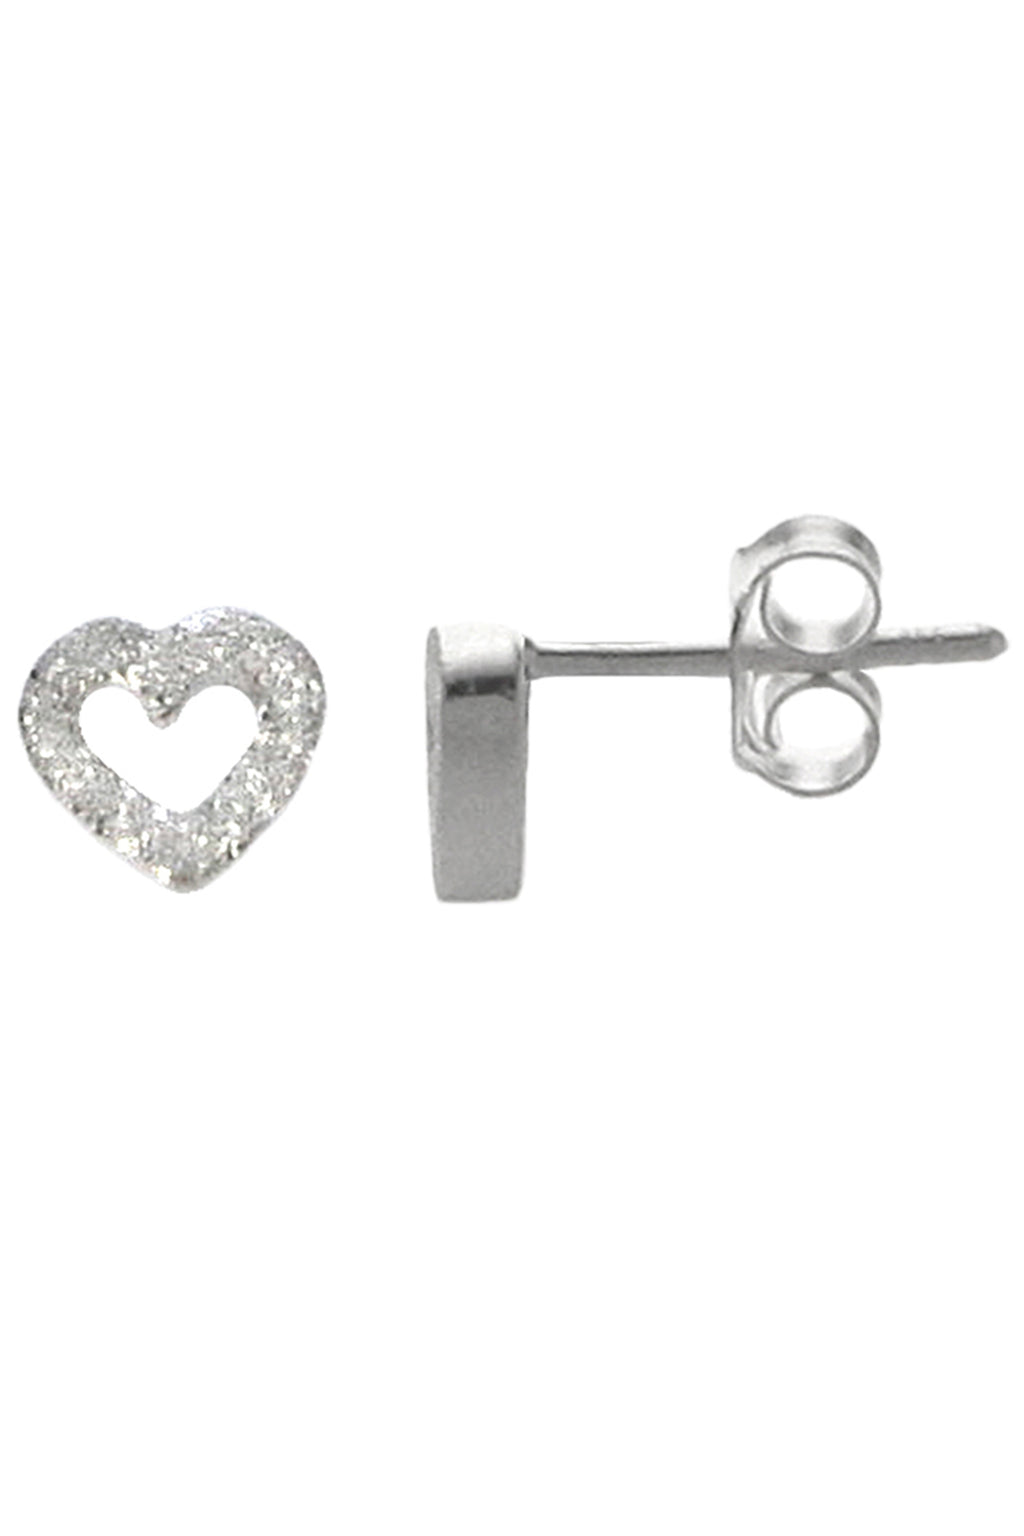 Brushed Silver Heart Stud Earrings / Nina B Jewellery